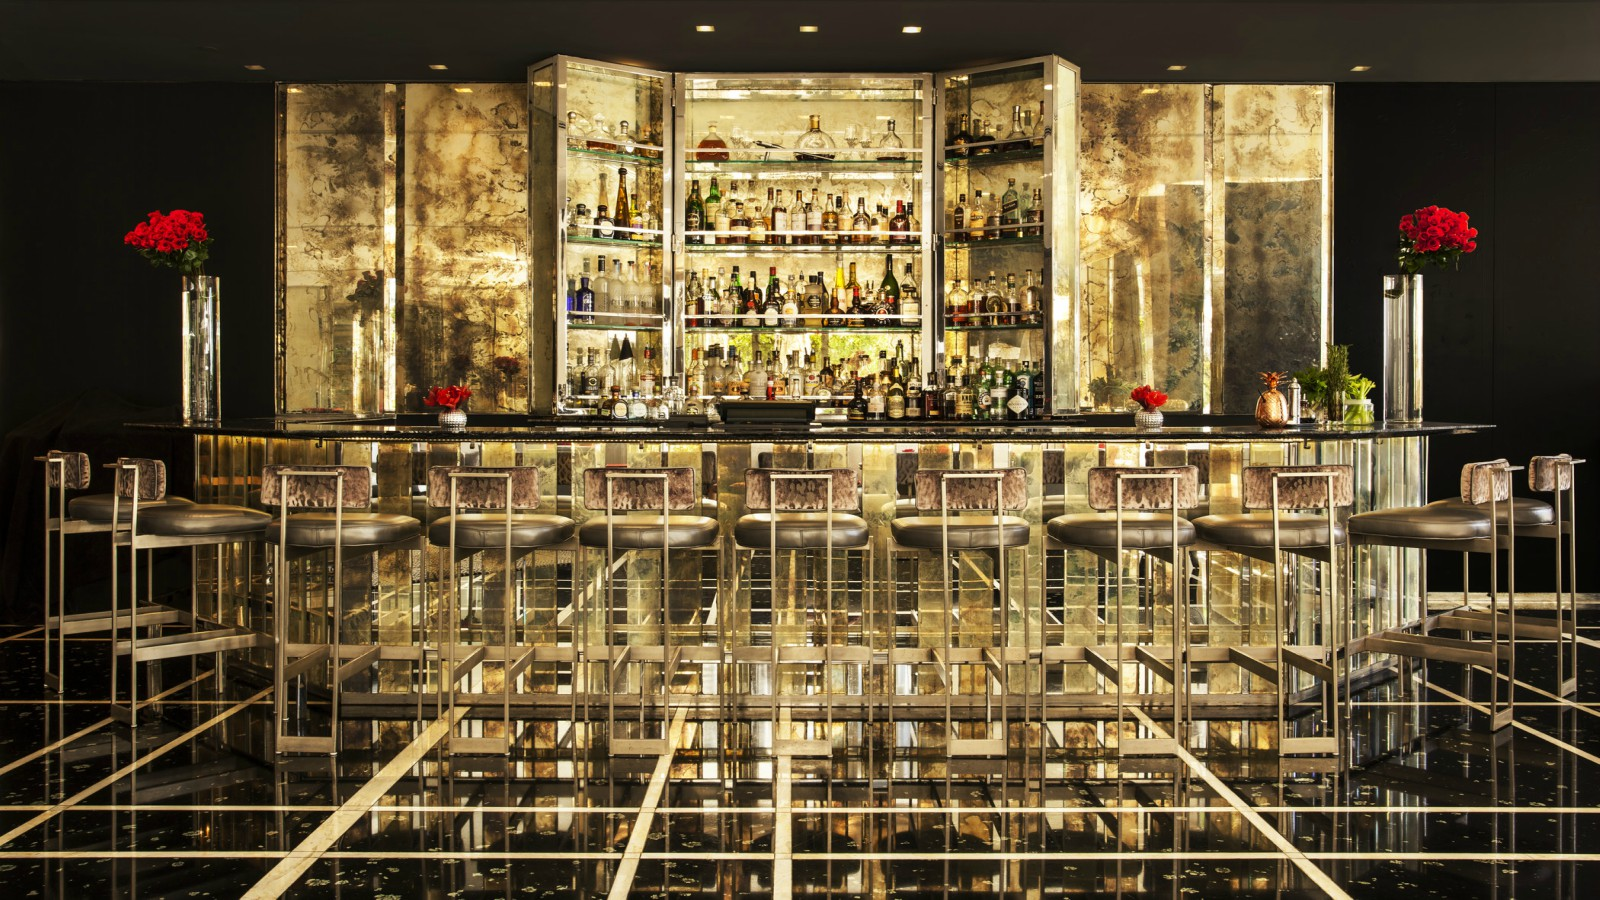 St. Regis Bar - The St. Regis Bal Harbour